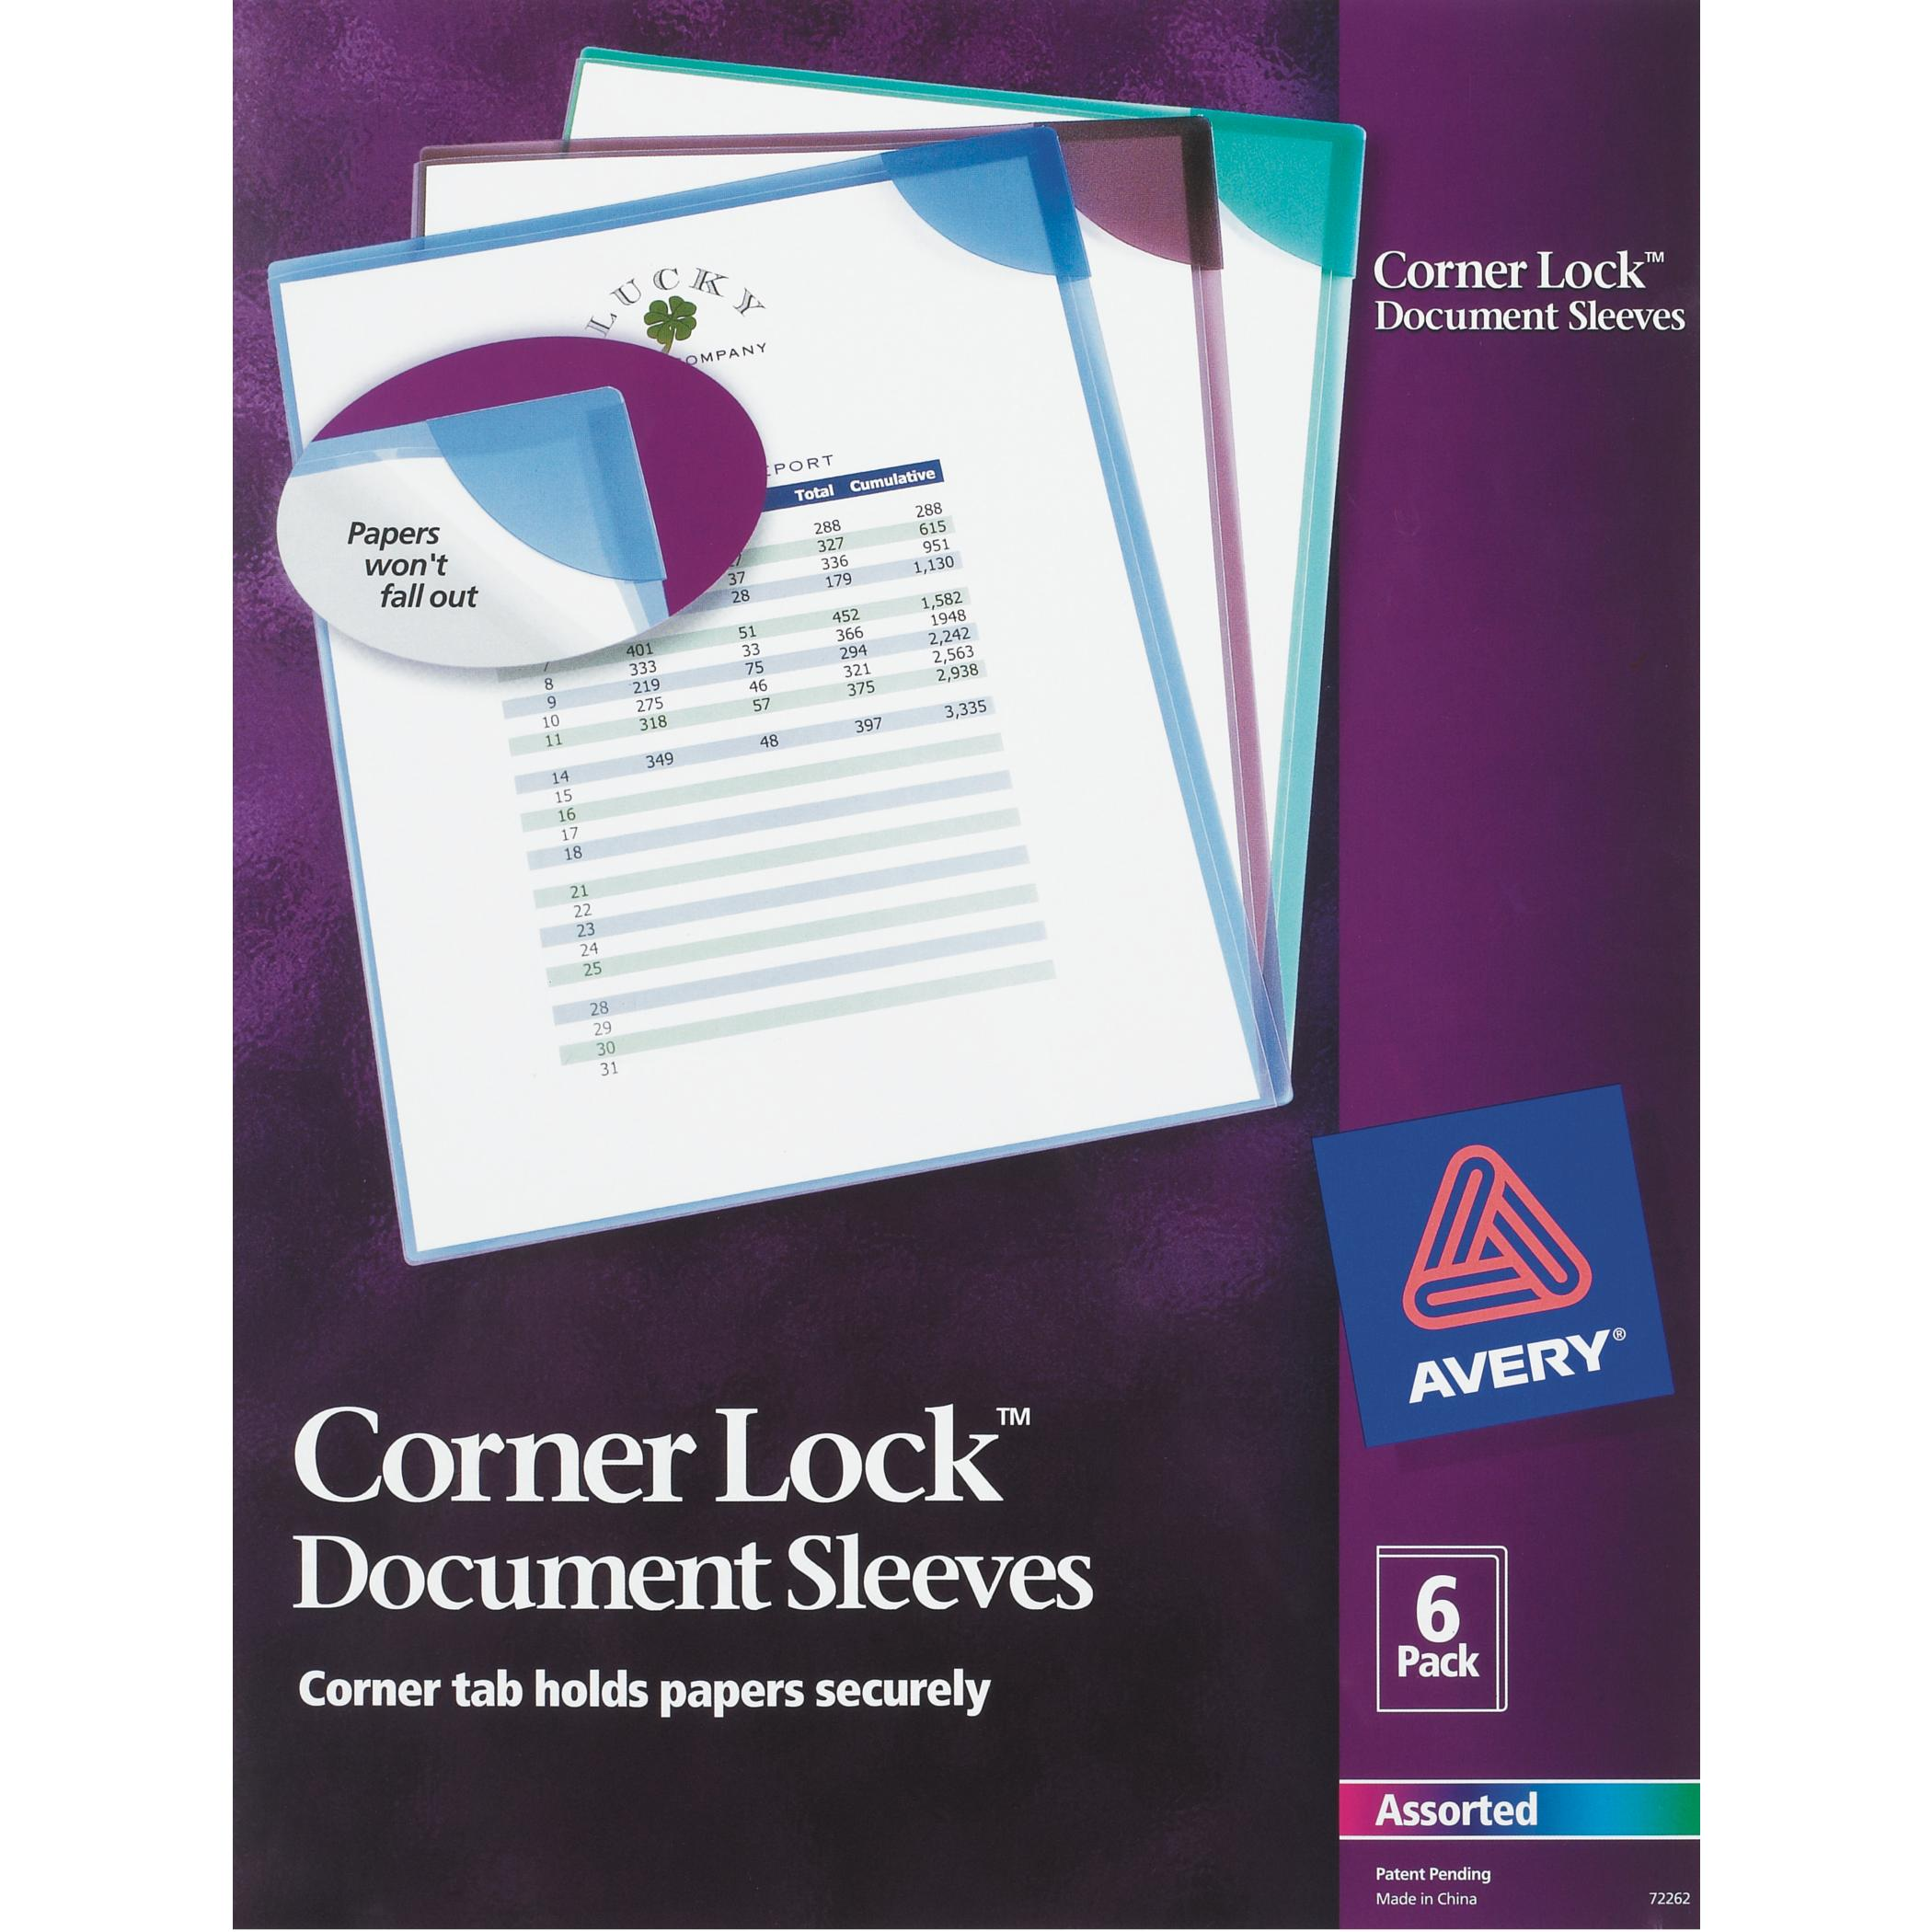 Avery(R) Corner Lock(TM) Document Sleeves 72262, Assorted, Pack of 6